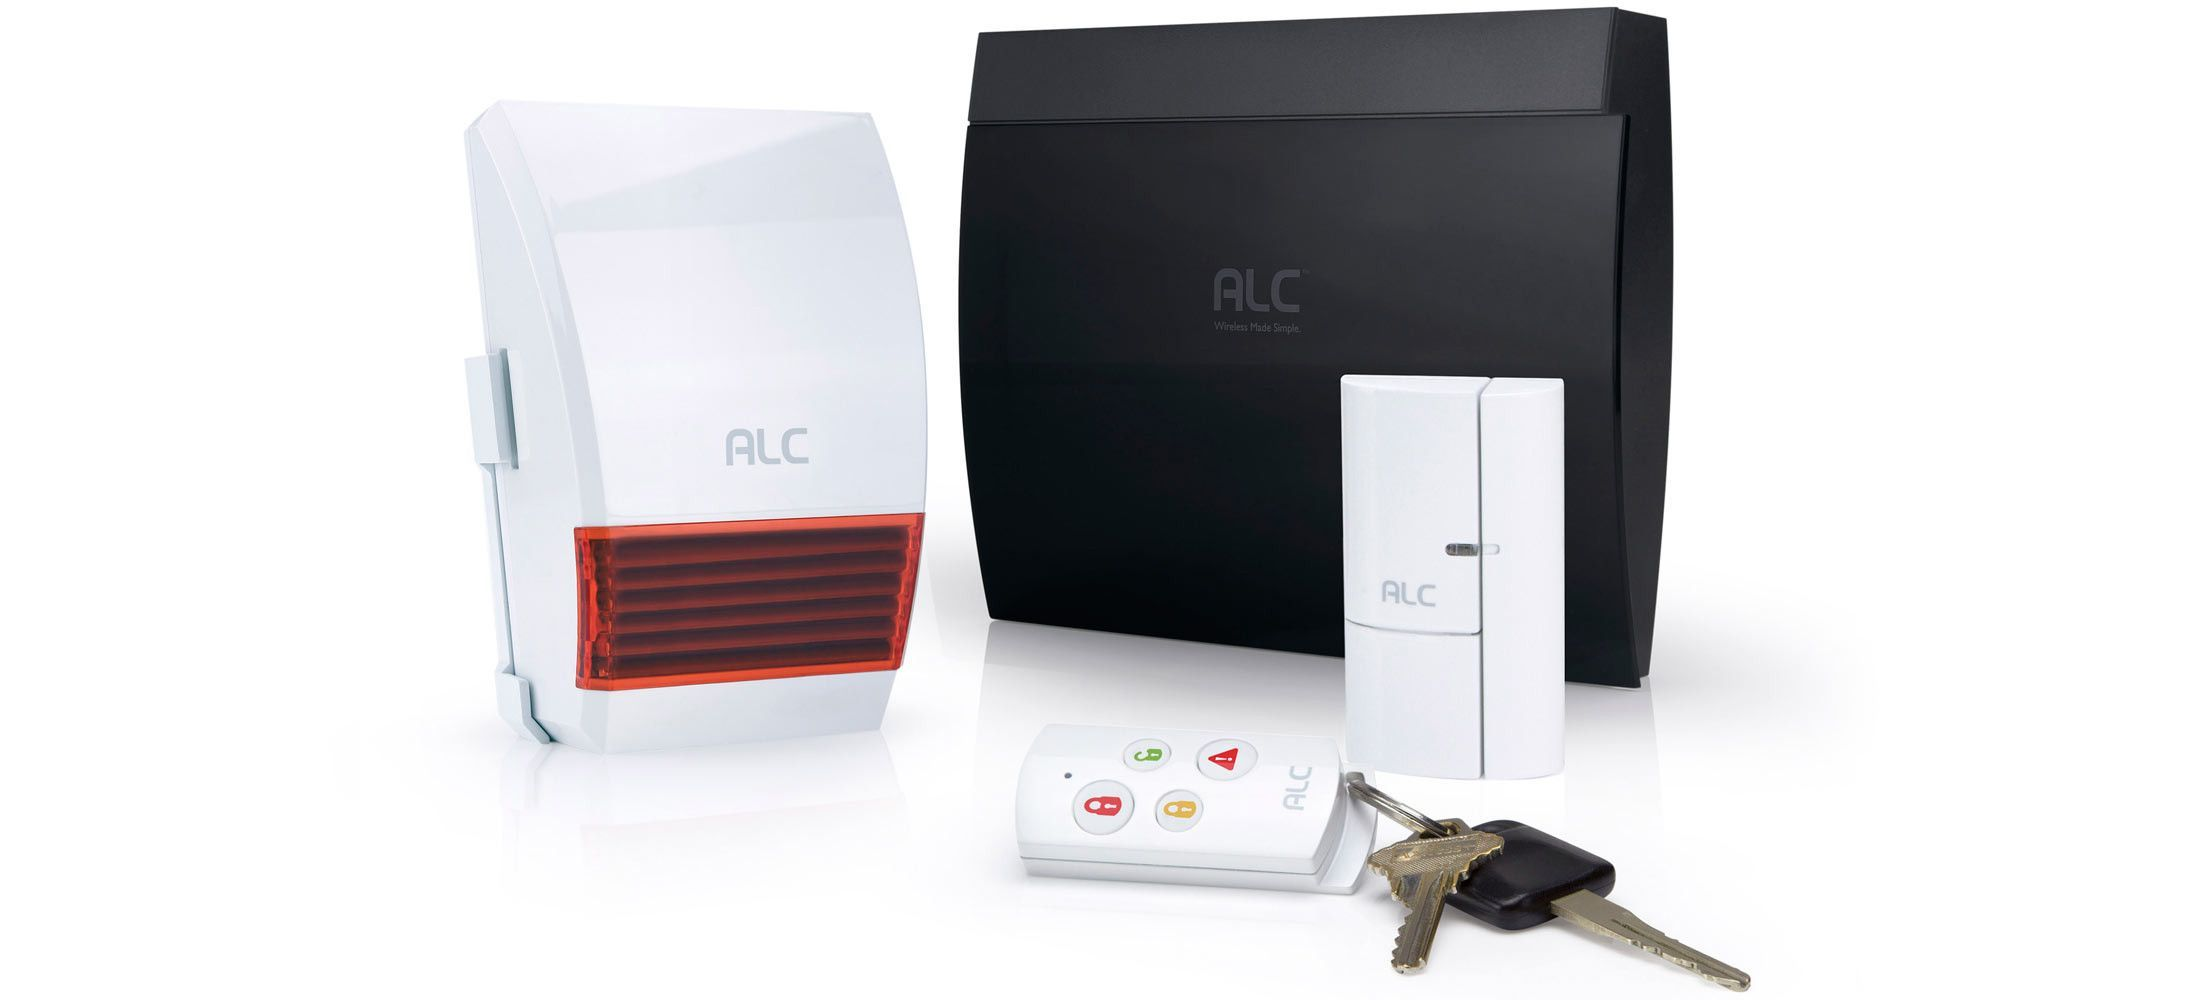 OVERVIEW This easy-to-install DIY security system includes: Control